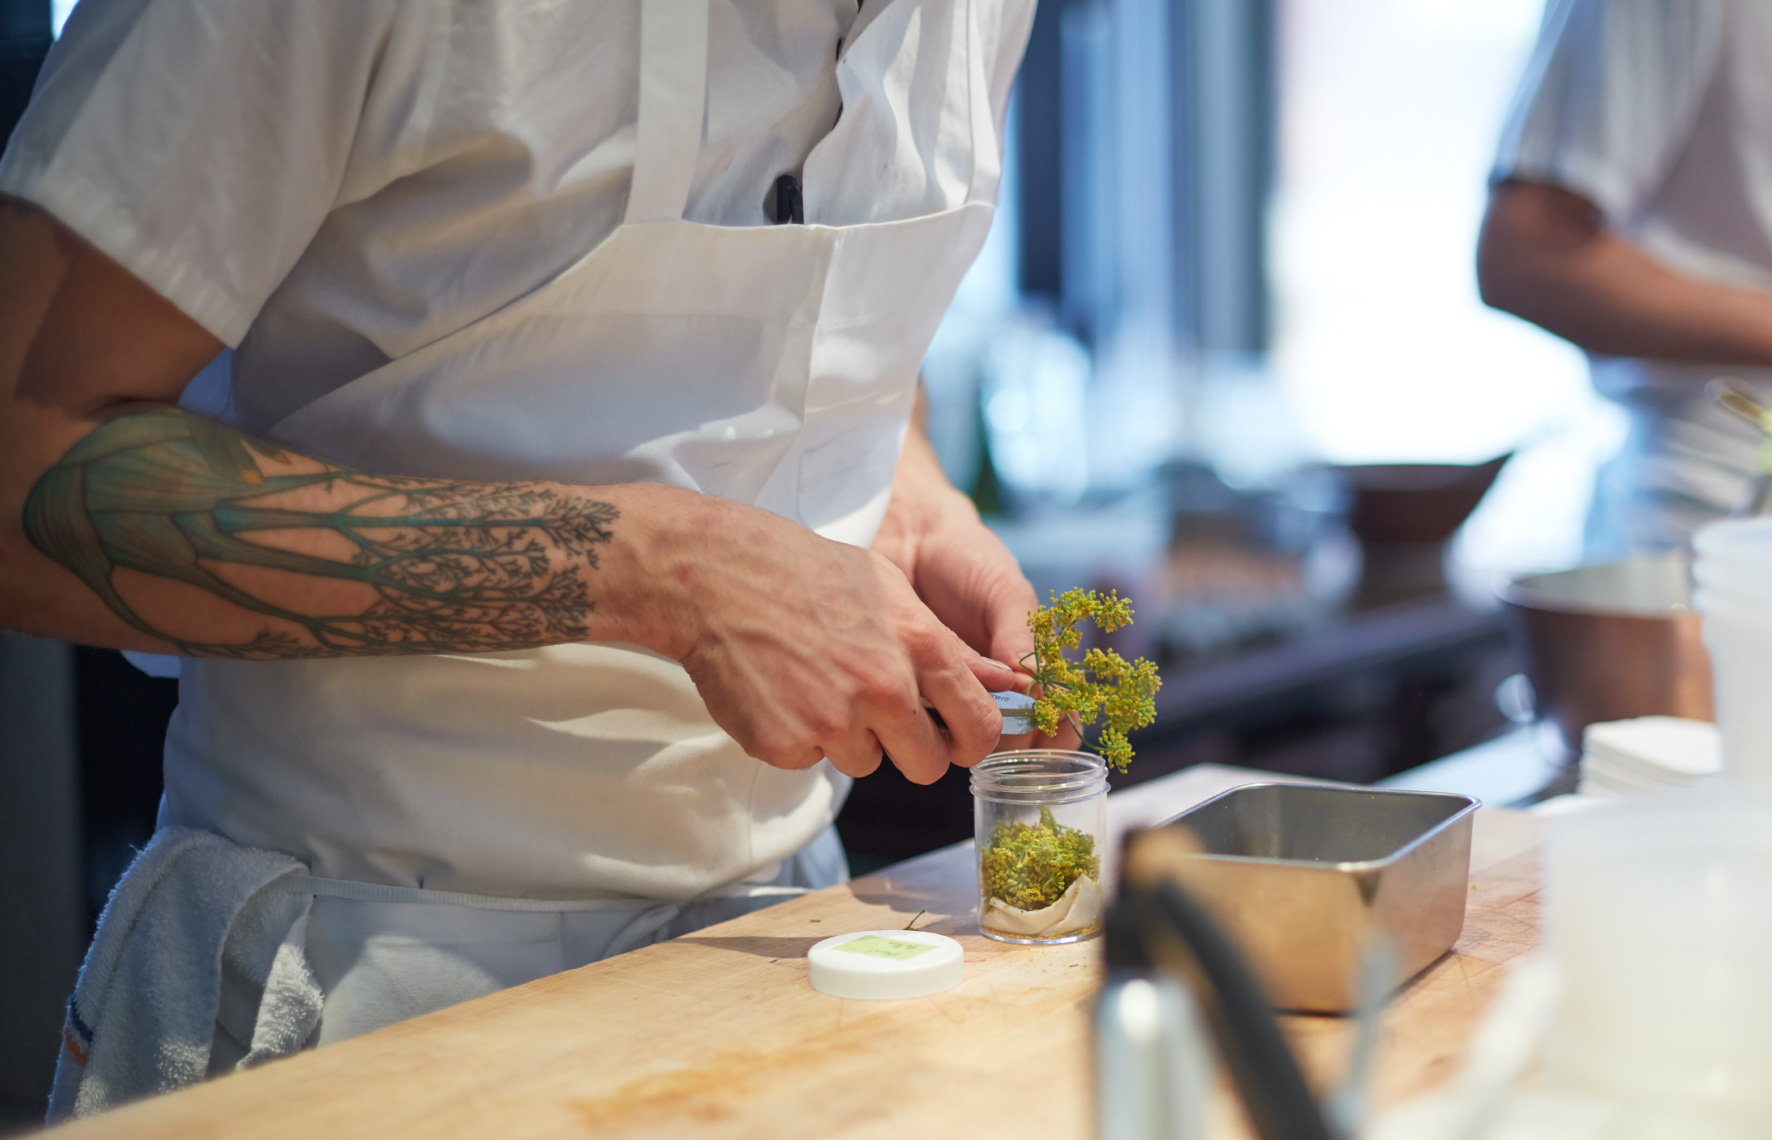 Chef slicing food at prep table in restaurant kitchen San Francisco lifestyle photographer